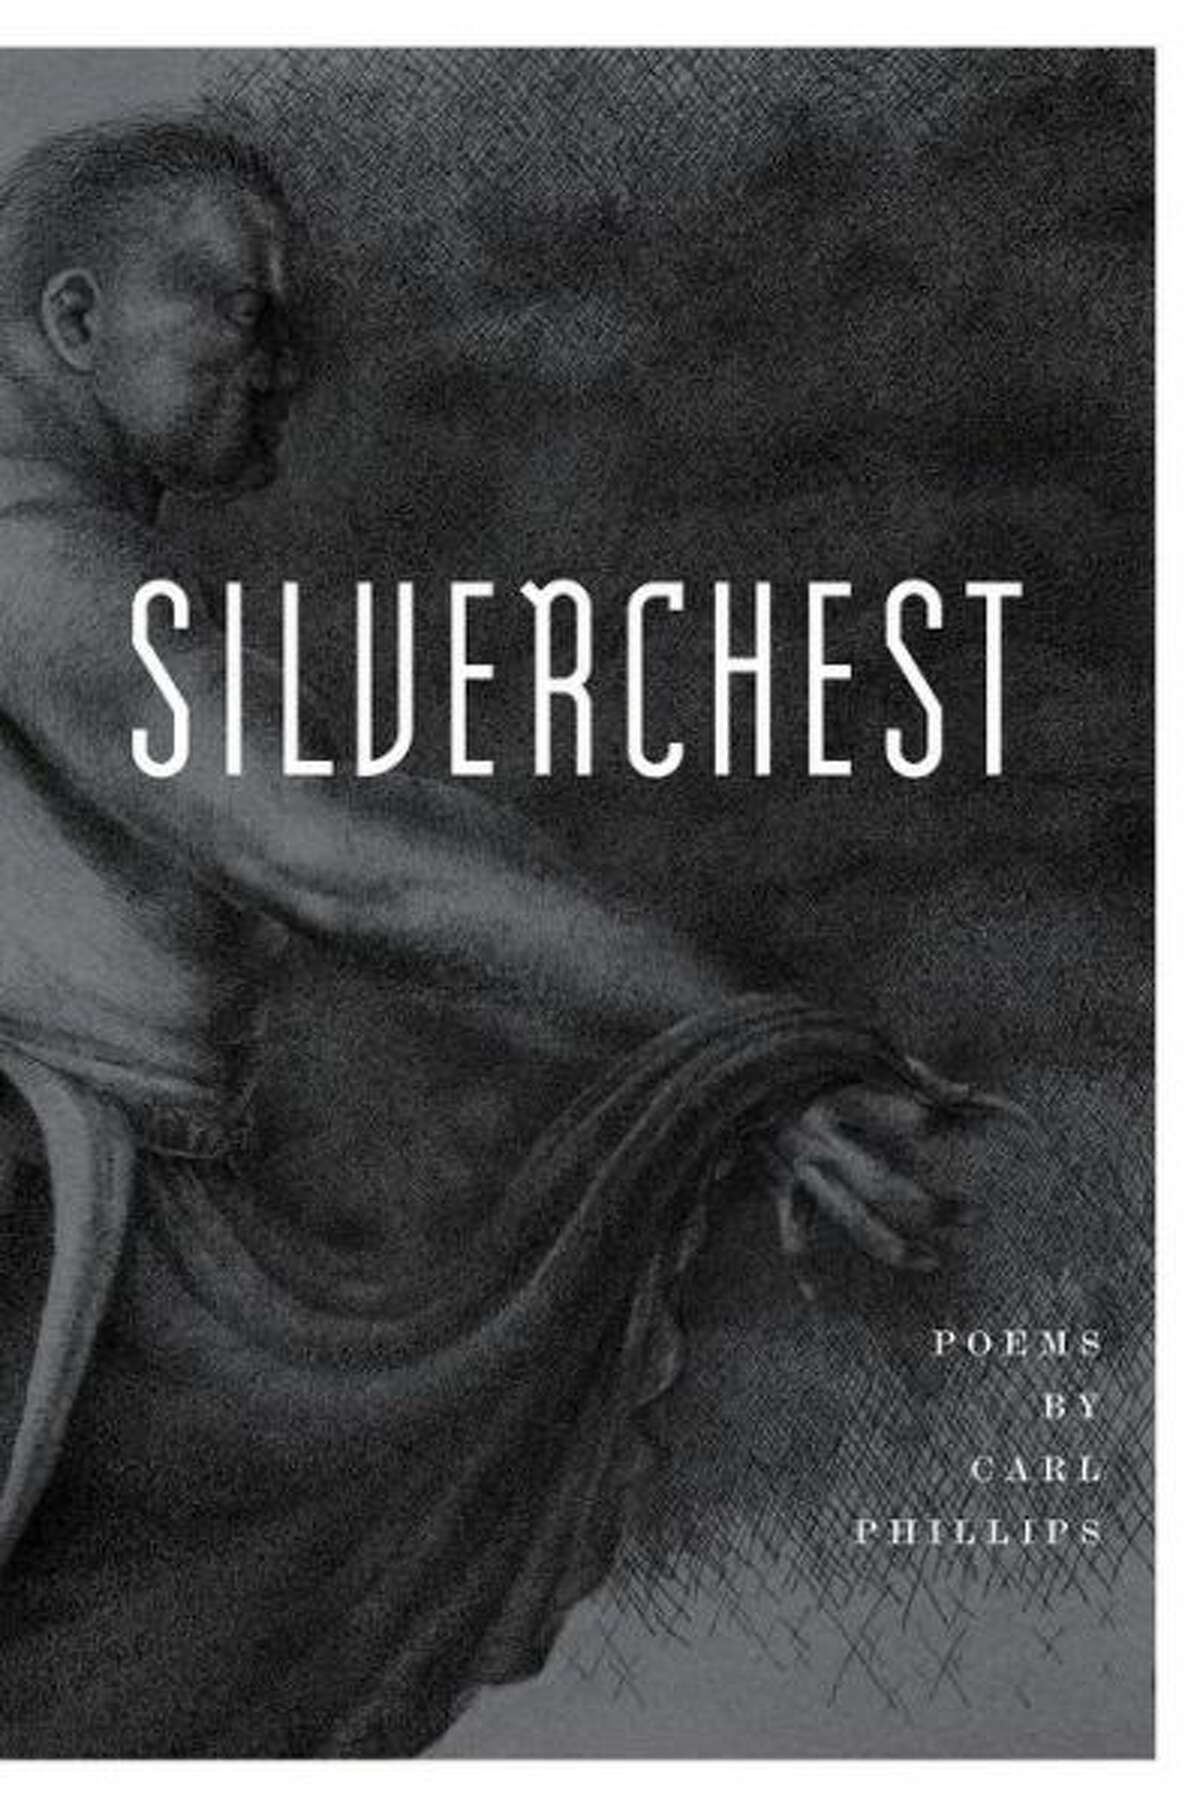 """""""Silverchest: Poems"""" by Carl Phillips"""